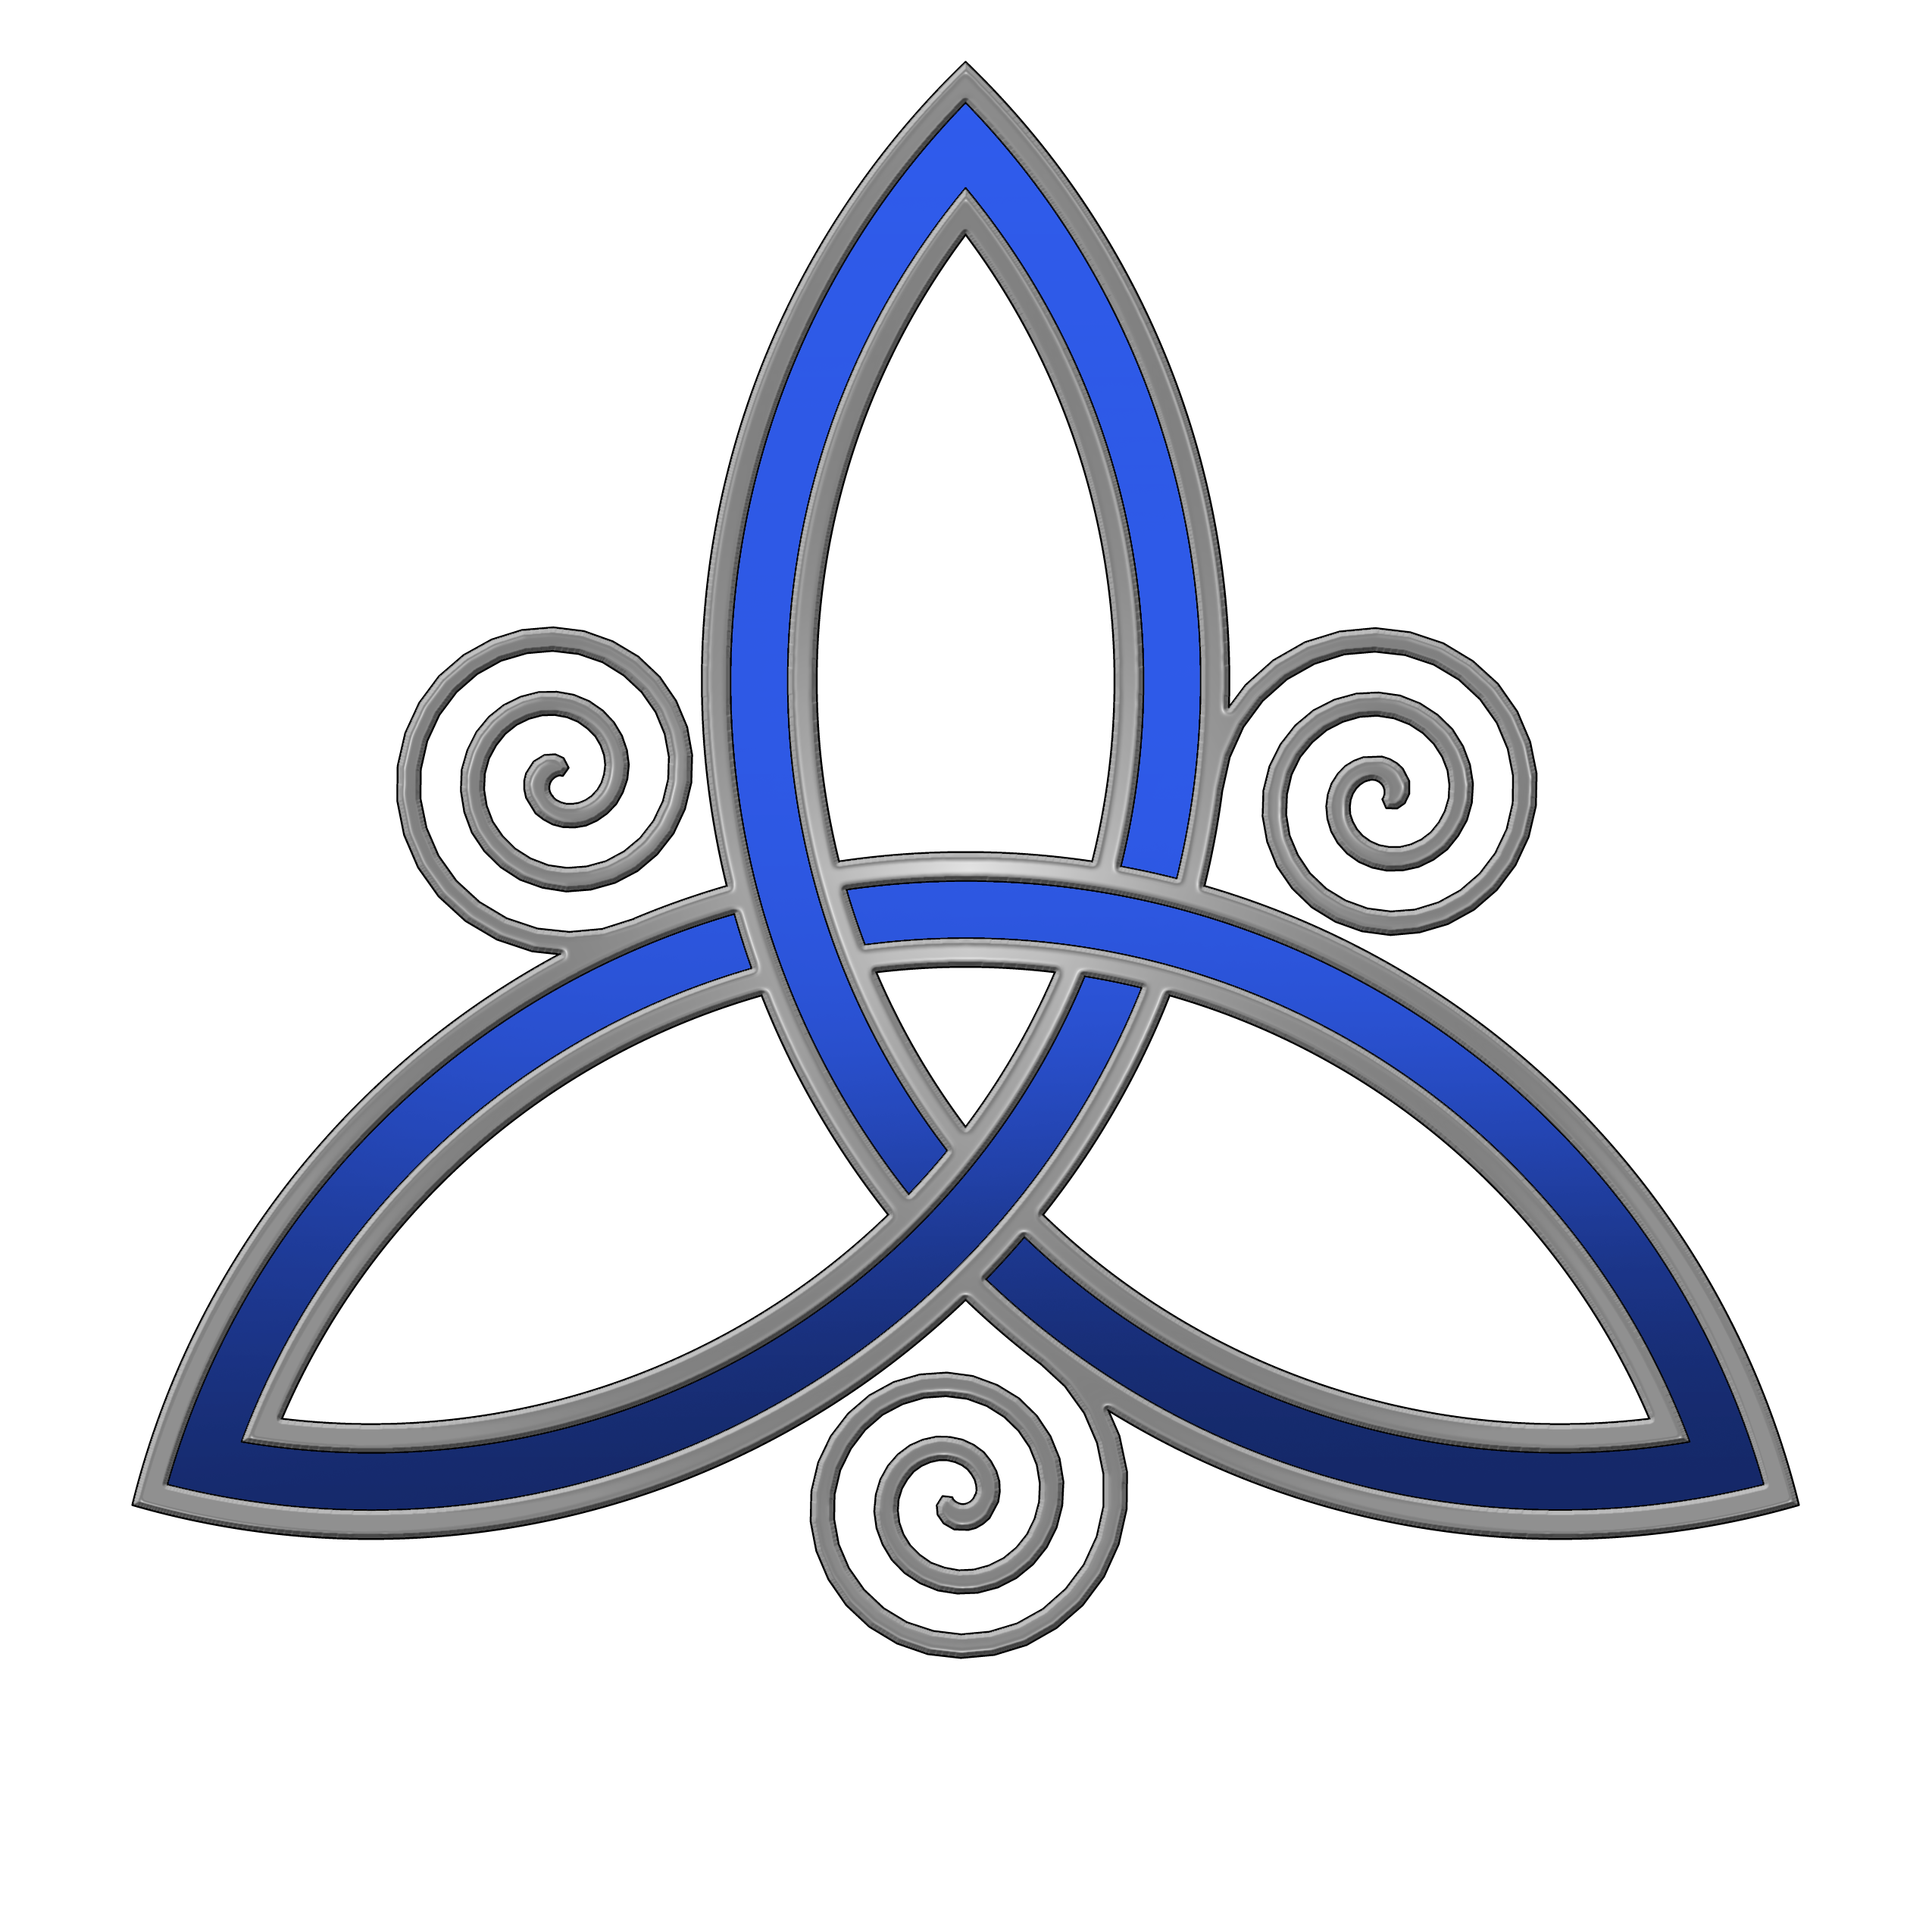 Mom Tattoo Png: Celtic Knot Tattoos Png & Free Celtic Knot Tattoos.png